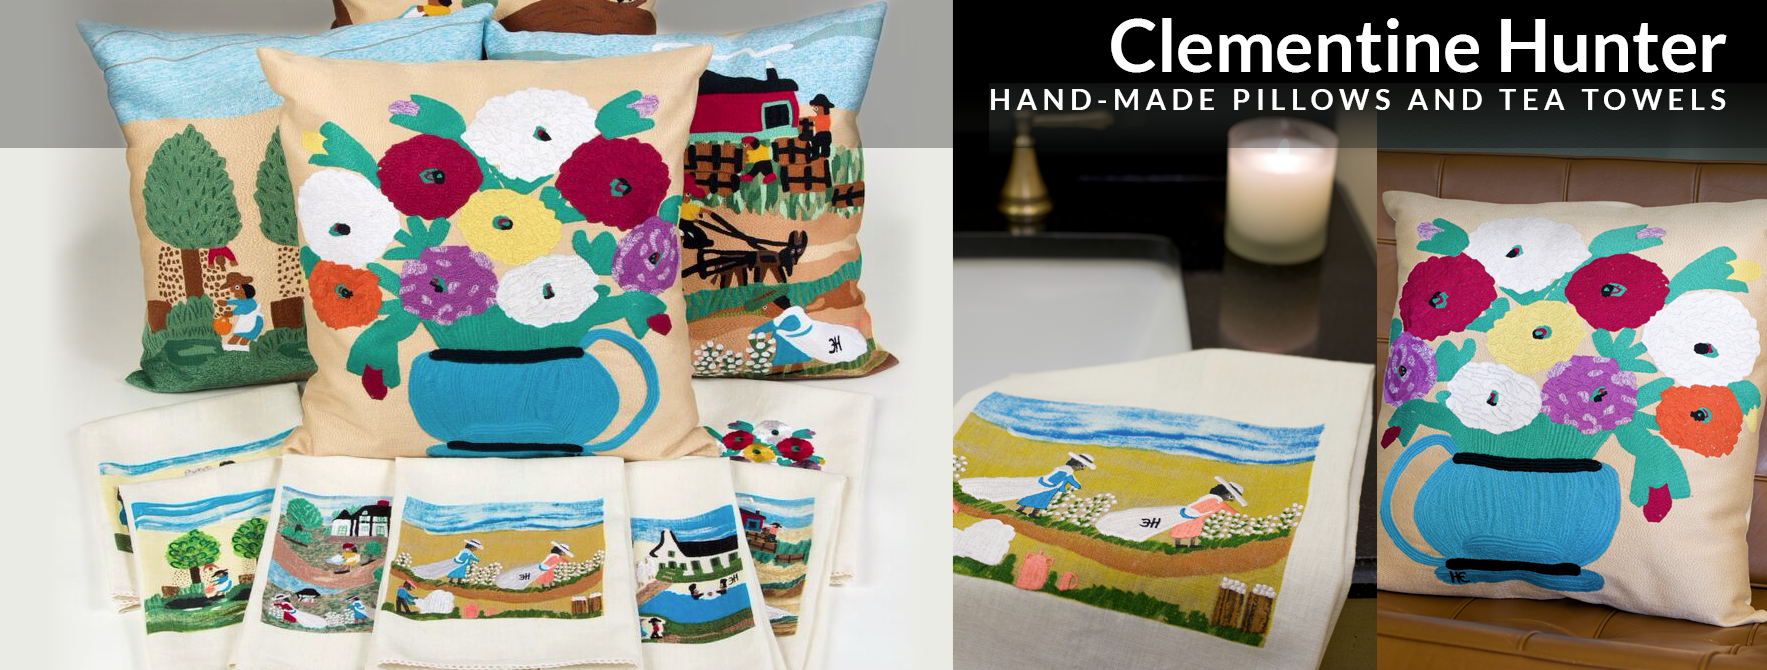 Clementine Hunter: Hand-Made Pillow and Tea Towels